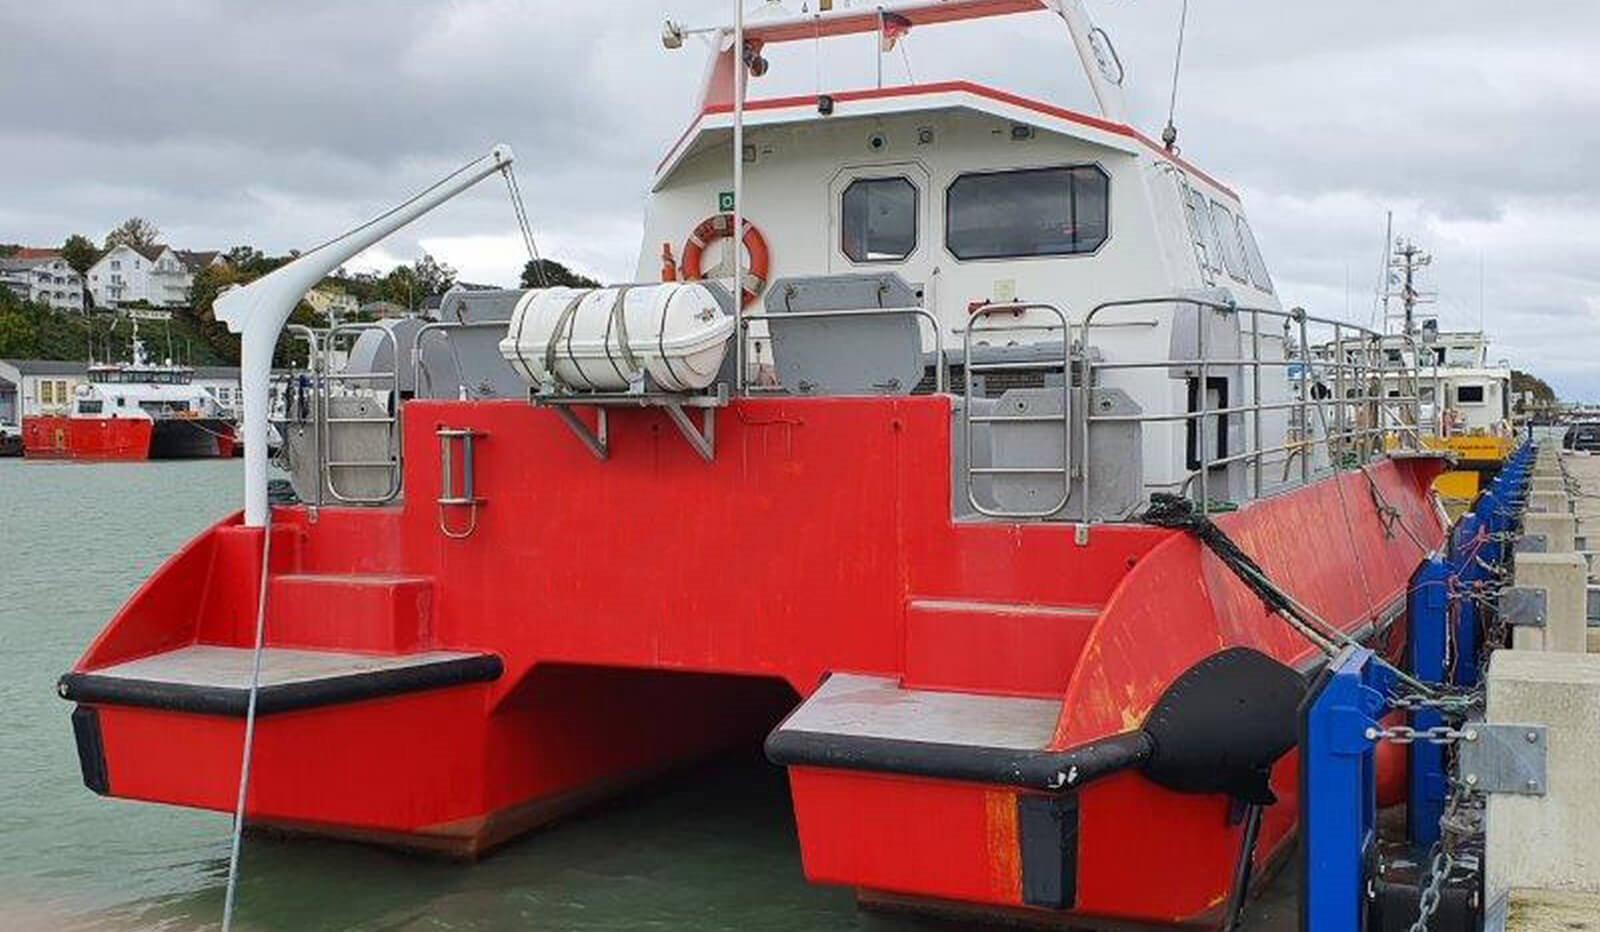 used offshore wind farm vessel for sale 07620 (10)